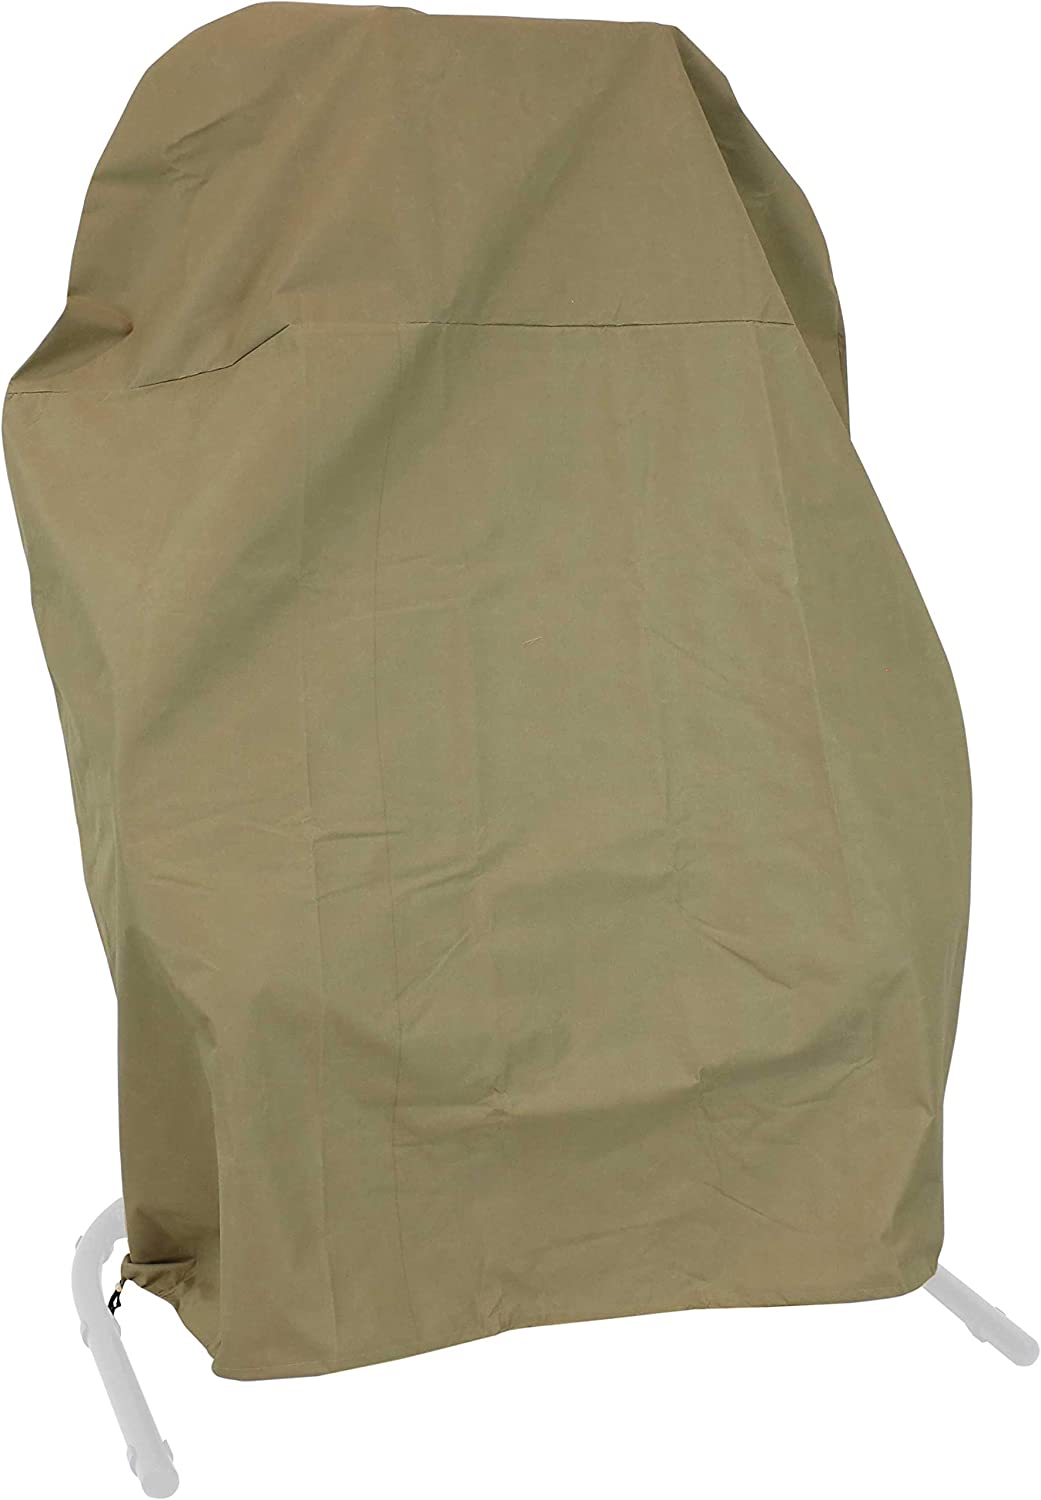 Sunnydaze Loveseat Egg Chair Outdoor Furniture Cover - 600D Oxford Weather-Resistant Protective Cover for Chair - Khaki - Great for Winter Protection